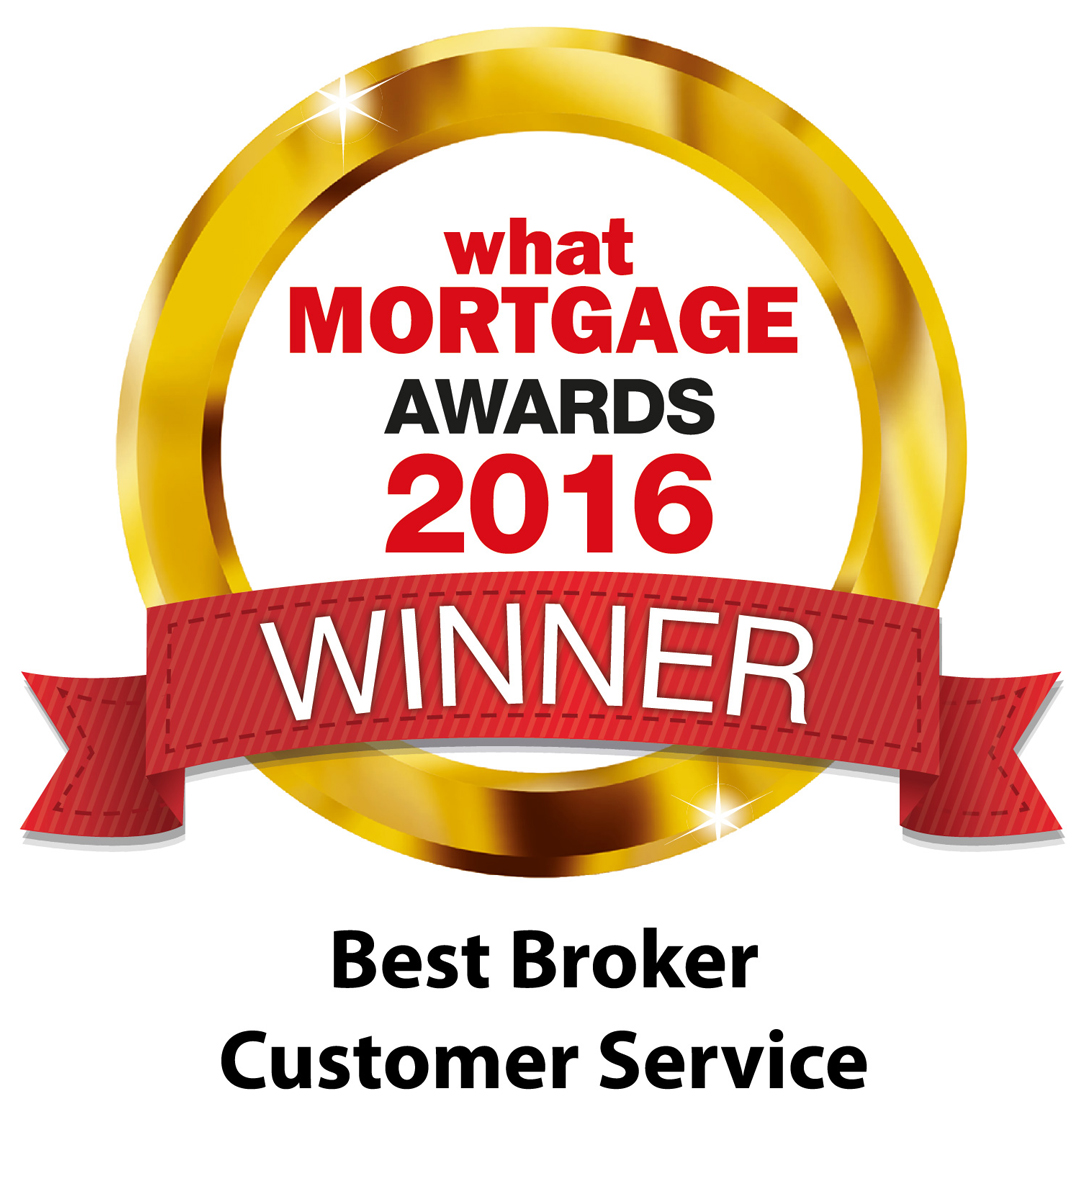 Best Mortgage Broker Customer Service 2016 - Mortgage for Business